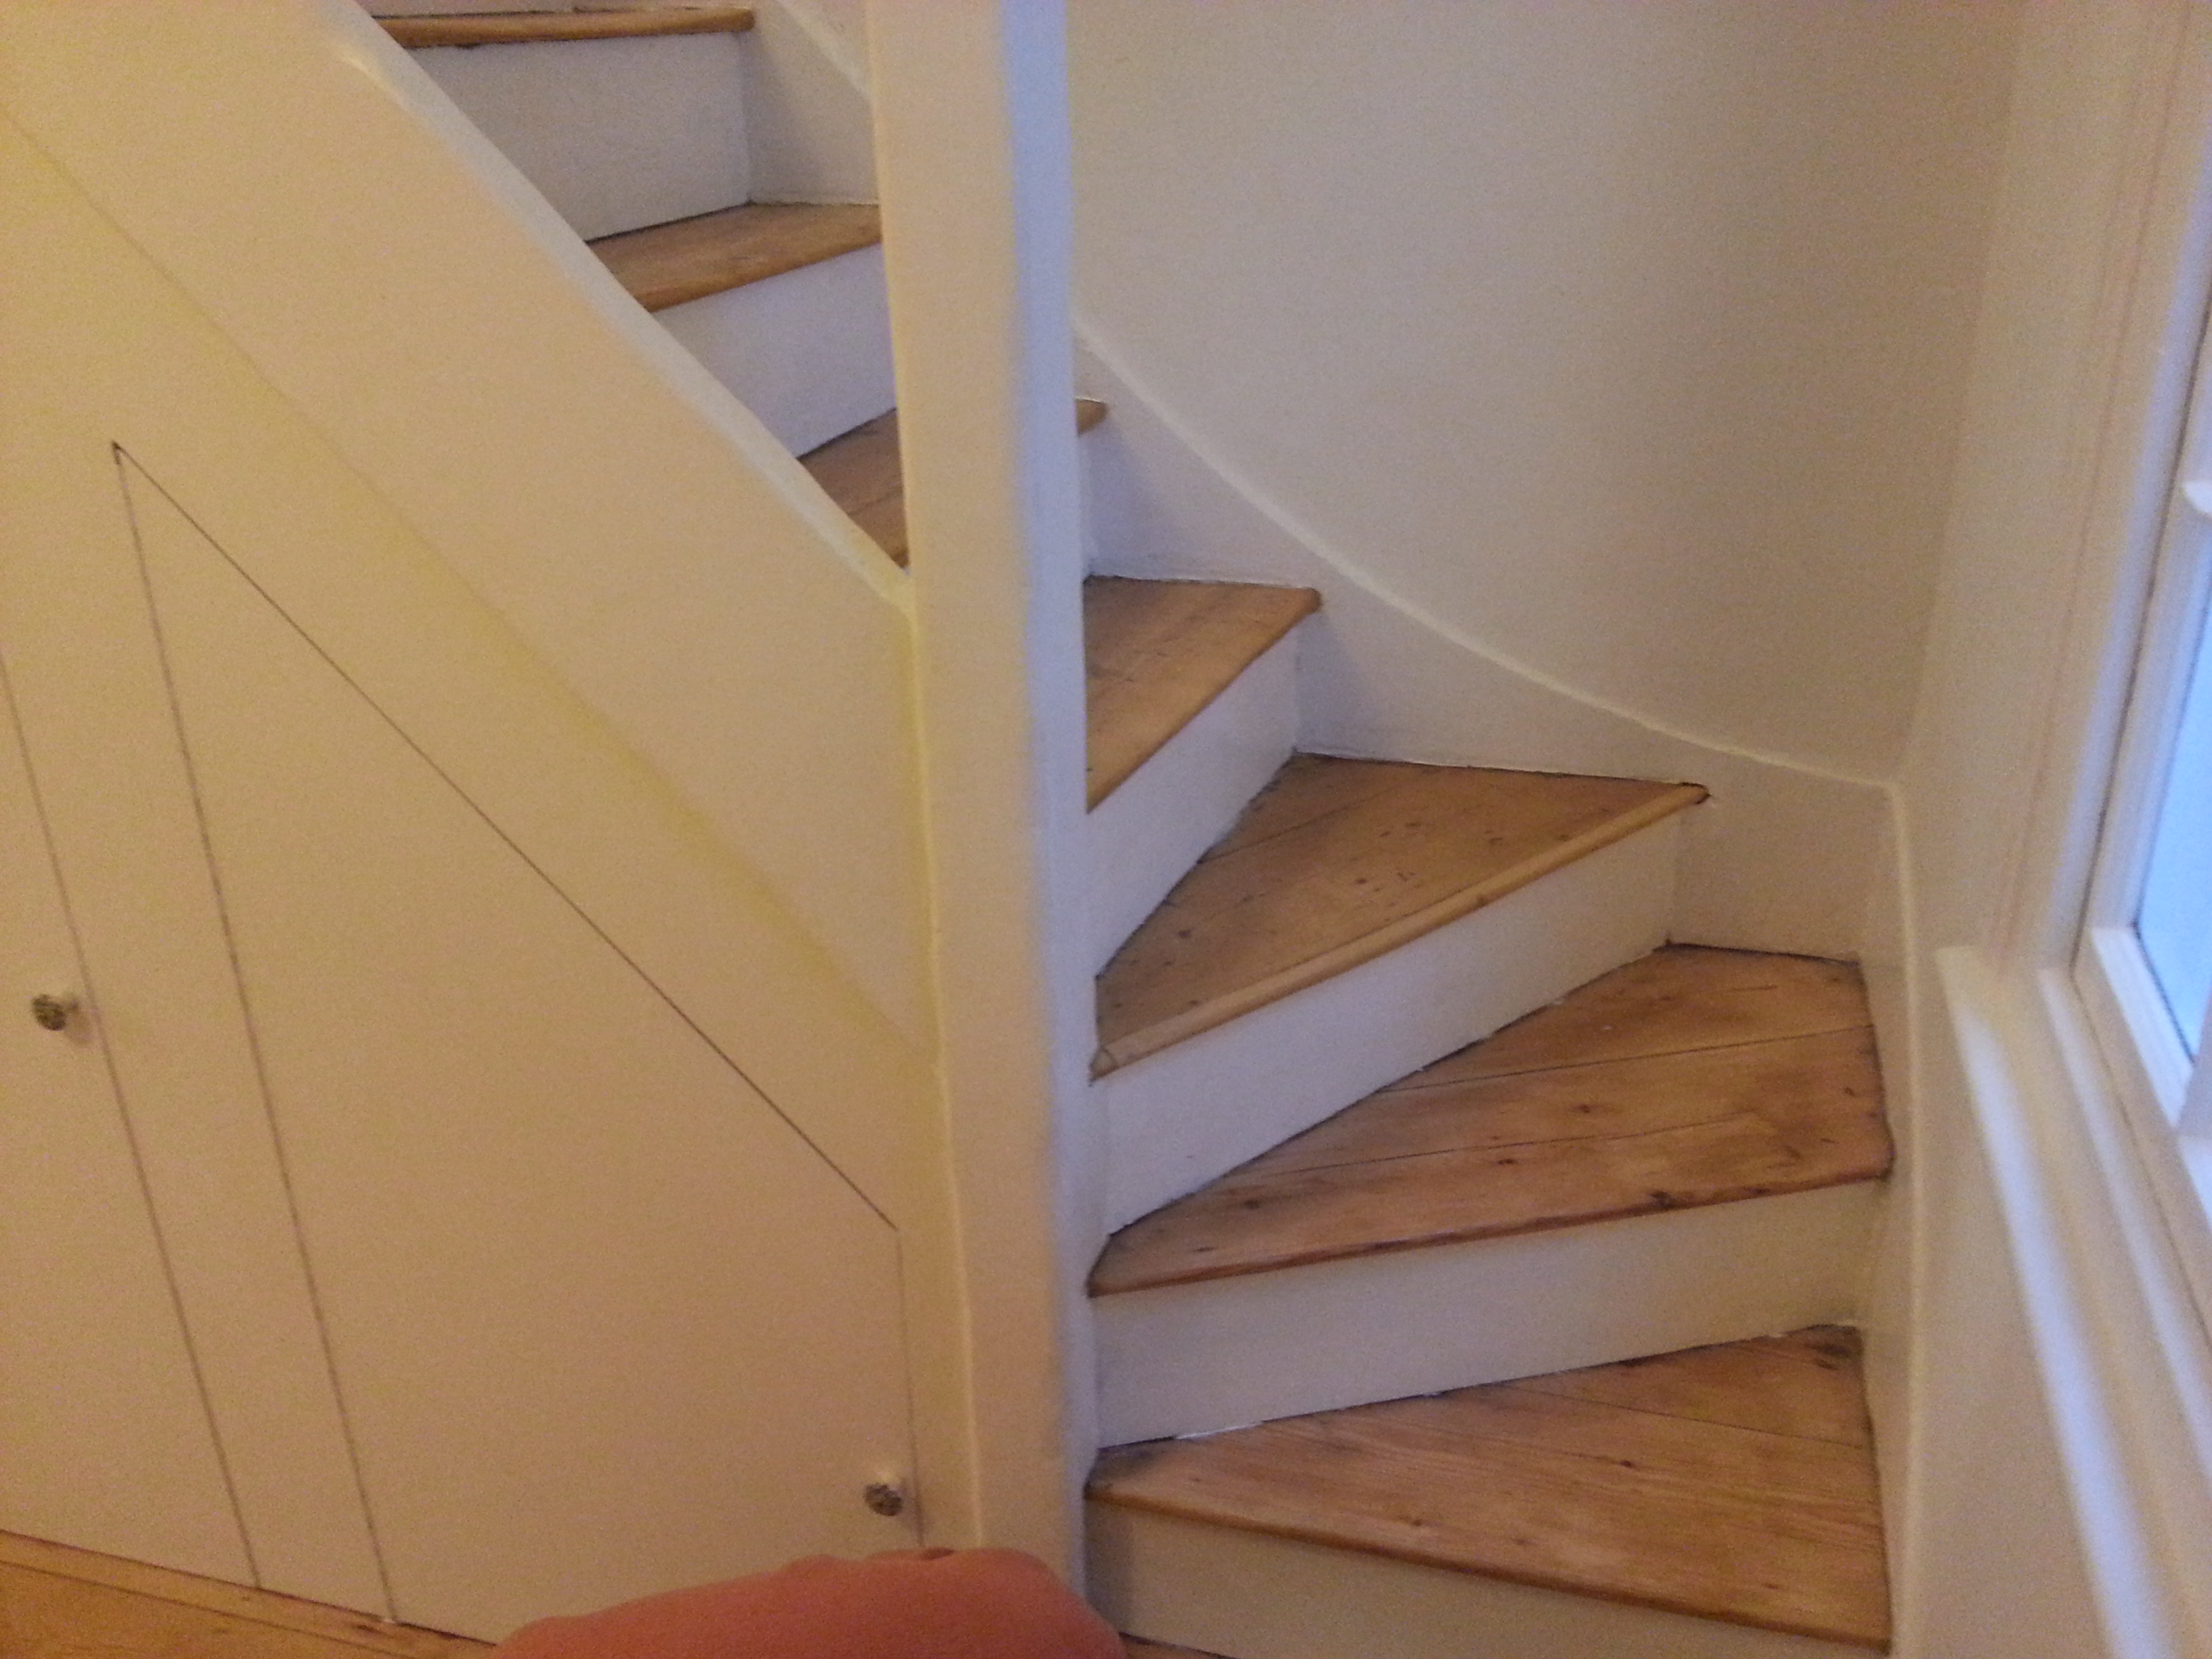 In Floor Sanding Slough We Have The Lowest Prices